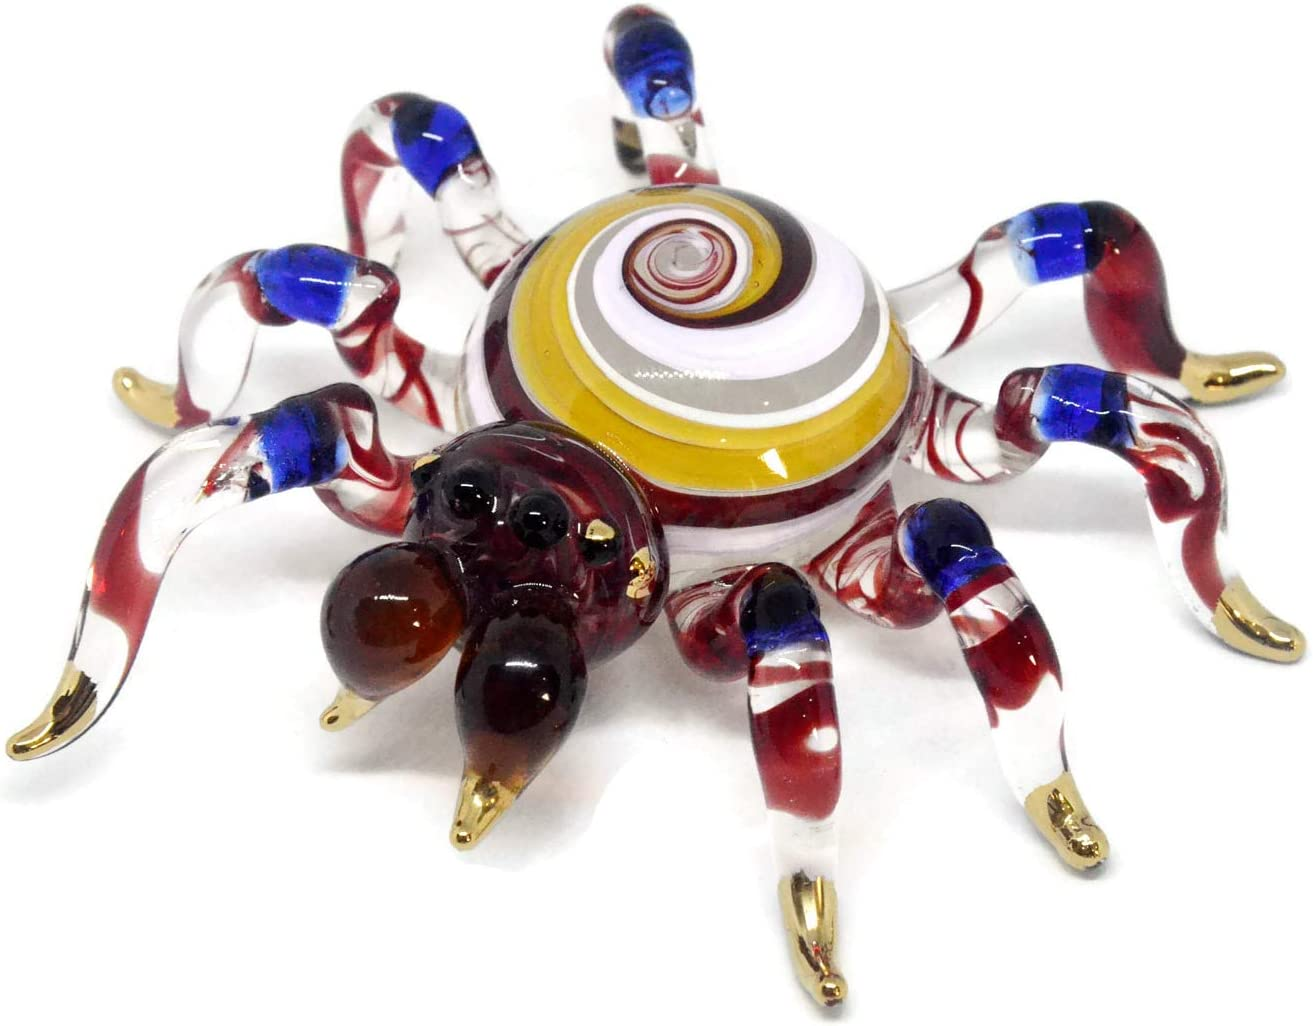 NaCraftTH Colorful Spiders Insect Glass Figurines Murano Glassblowing Artwork Handmade Figure Home Decorations Garden Ornaments